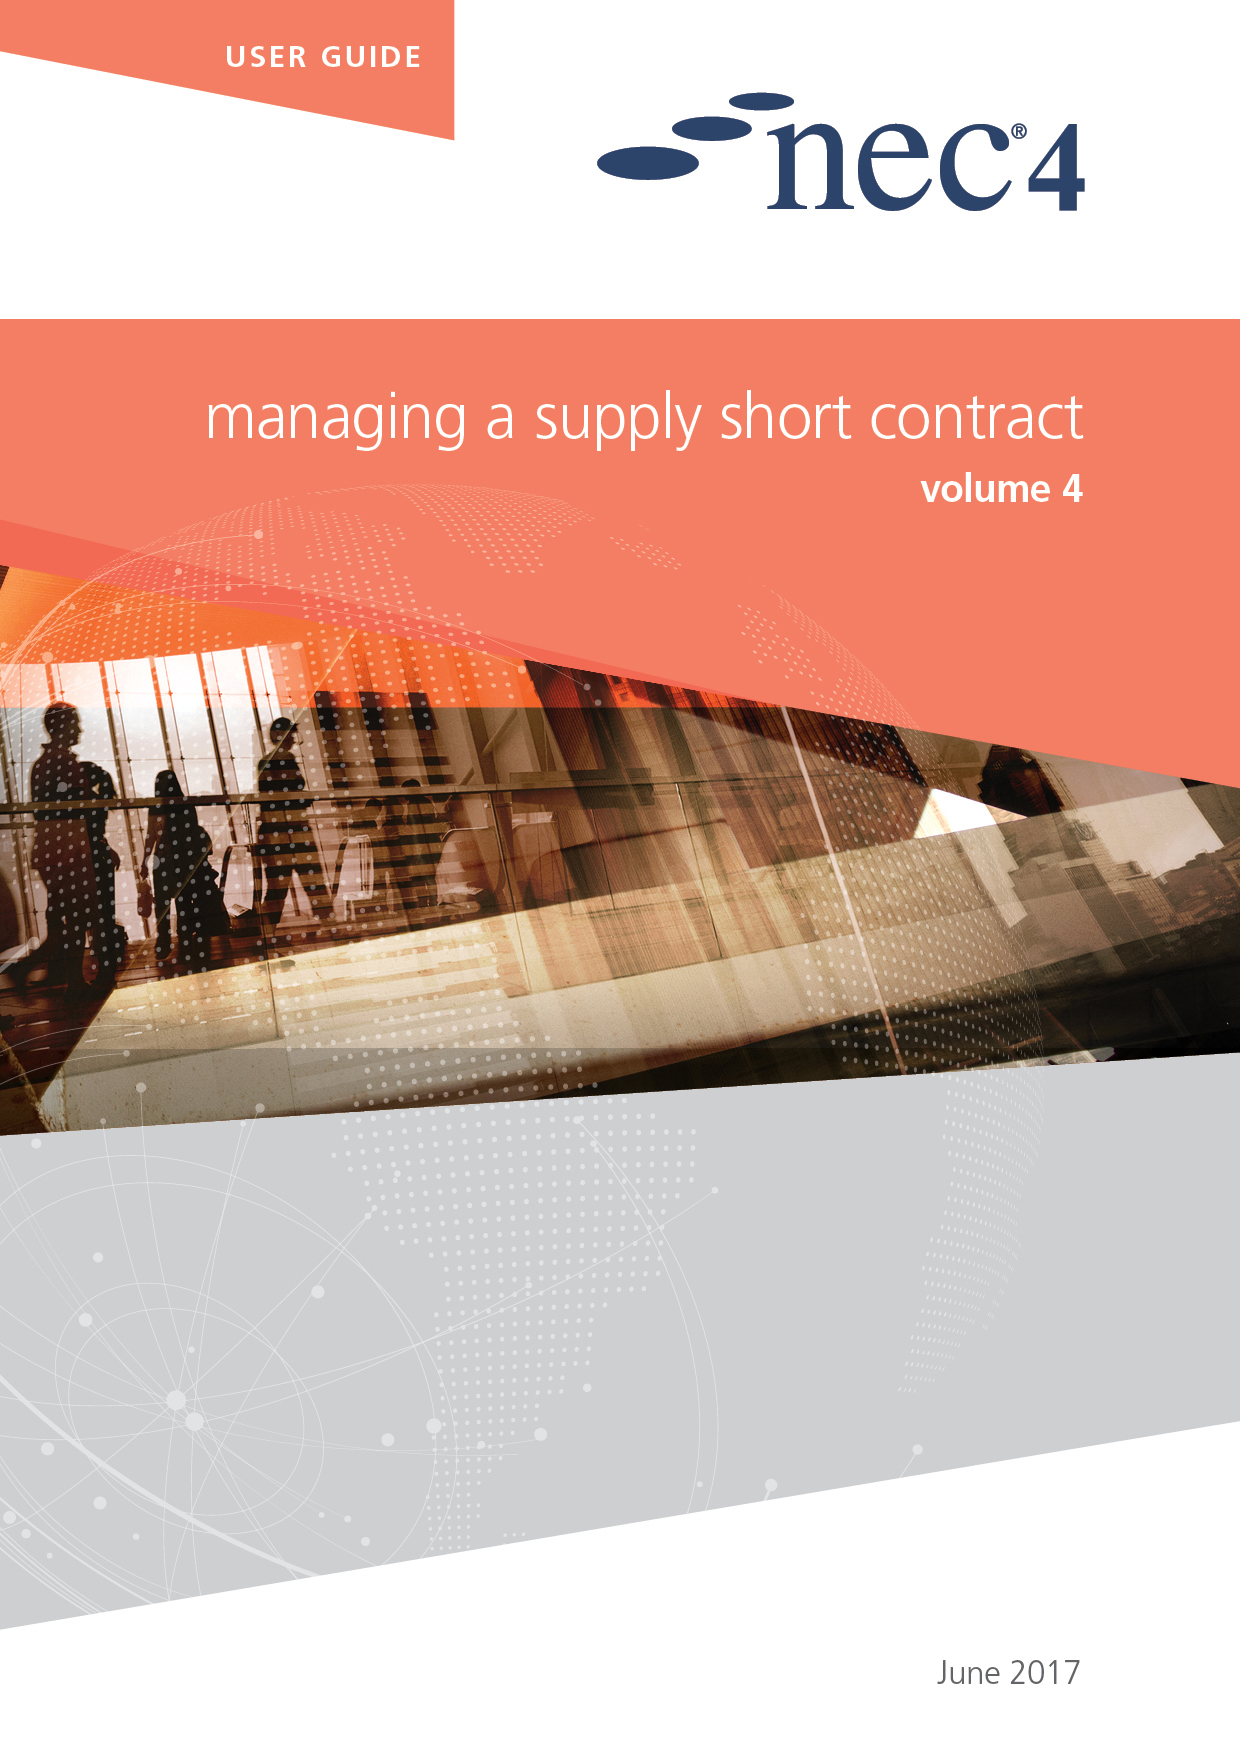 NEC4: Managing a Supply Short Contract